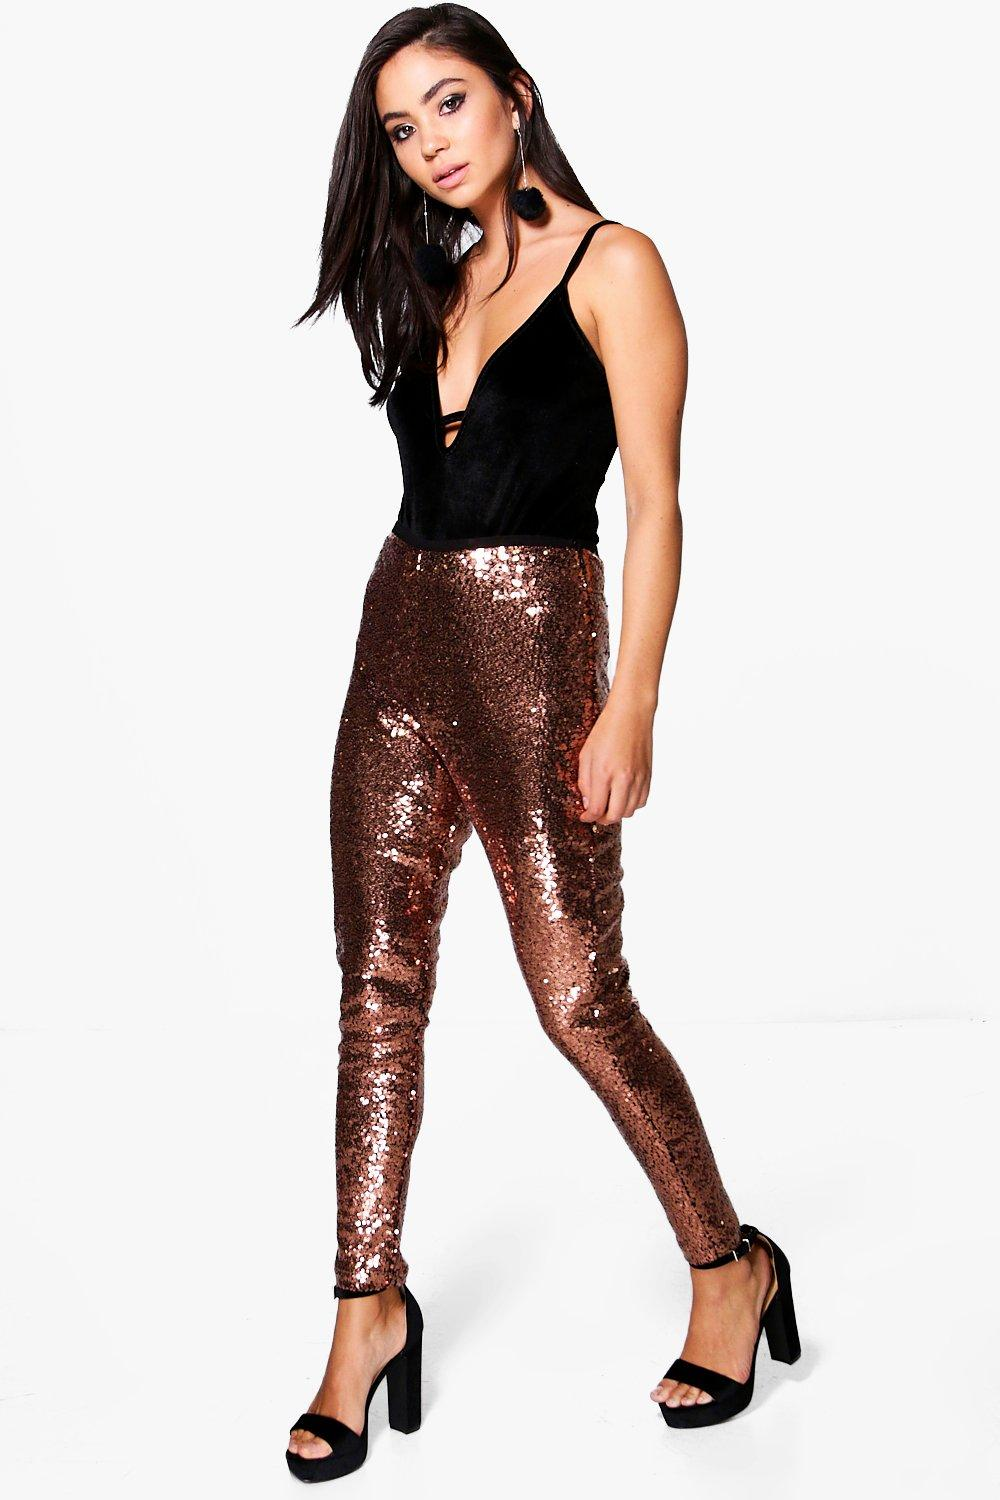 Loreli Super Skinny All Over Sequin Leggings rose gold